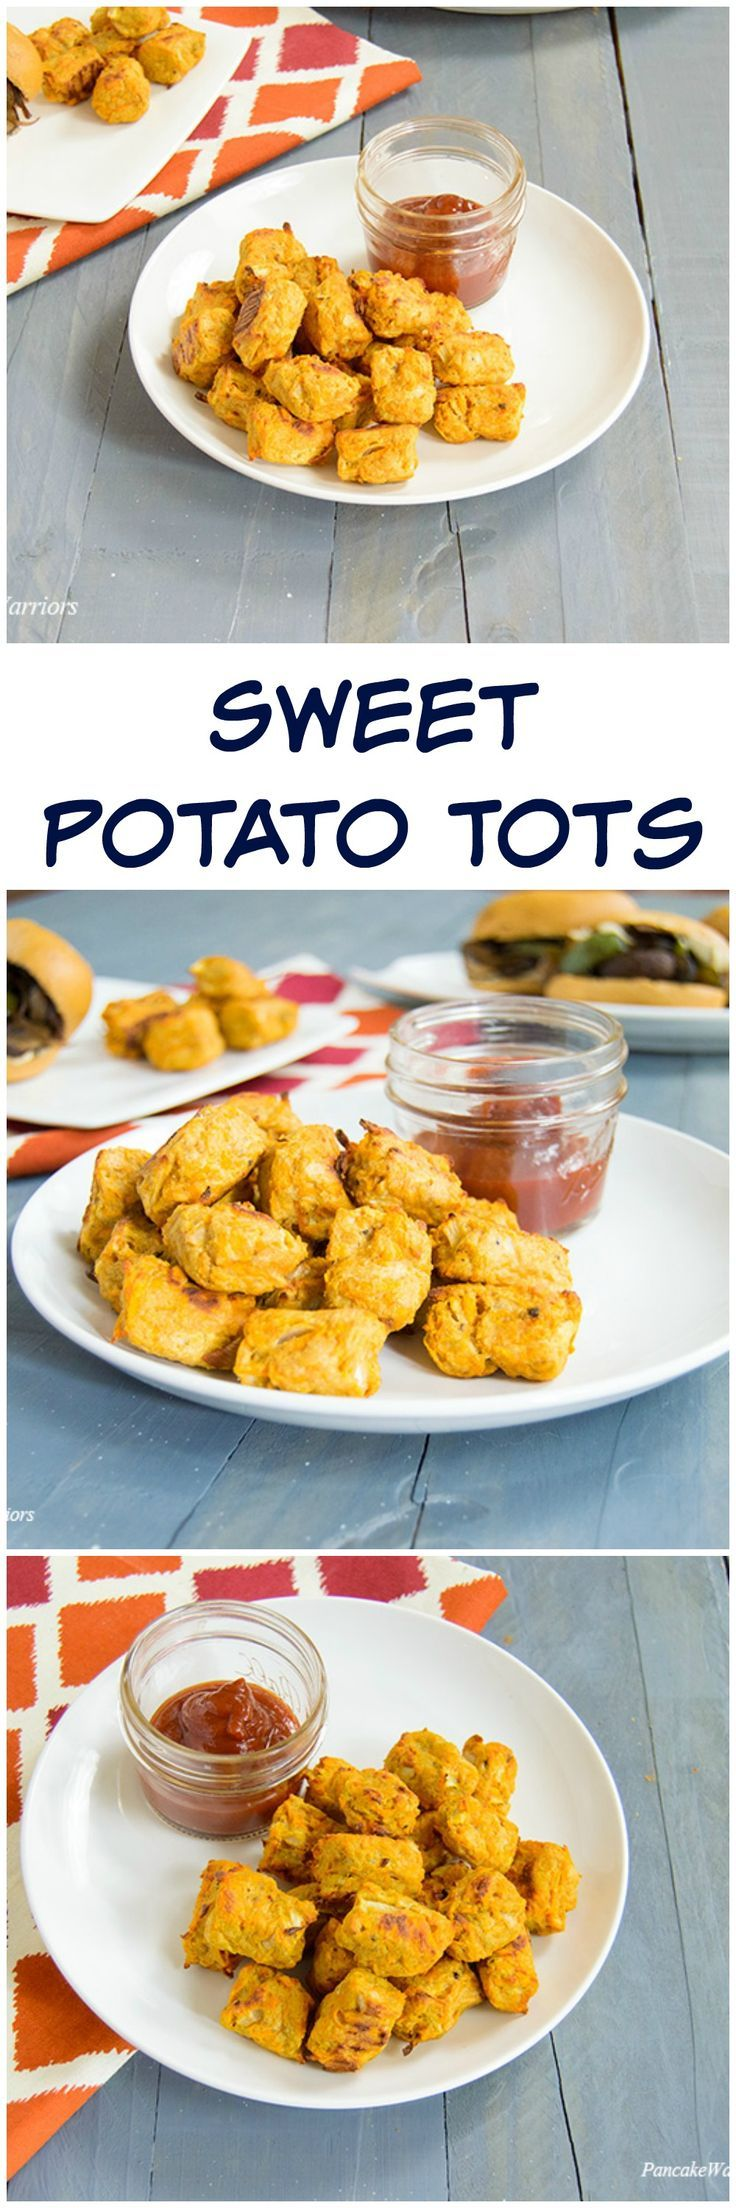 Healthy Cookout Recipes: Try These Healthy Sweet Potato Tots For An Easy Kid